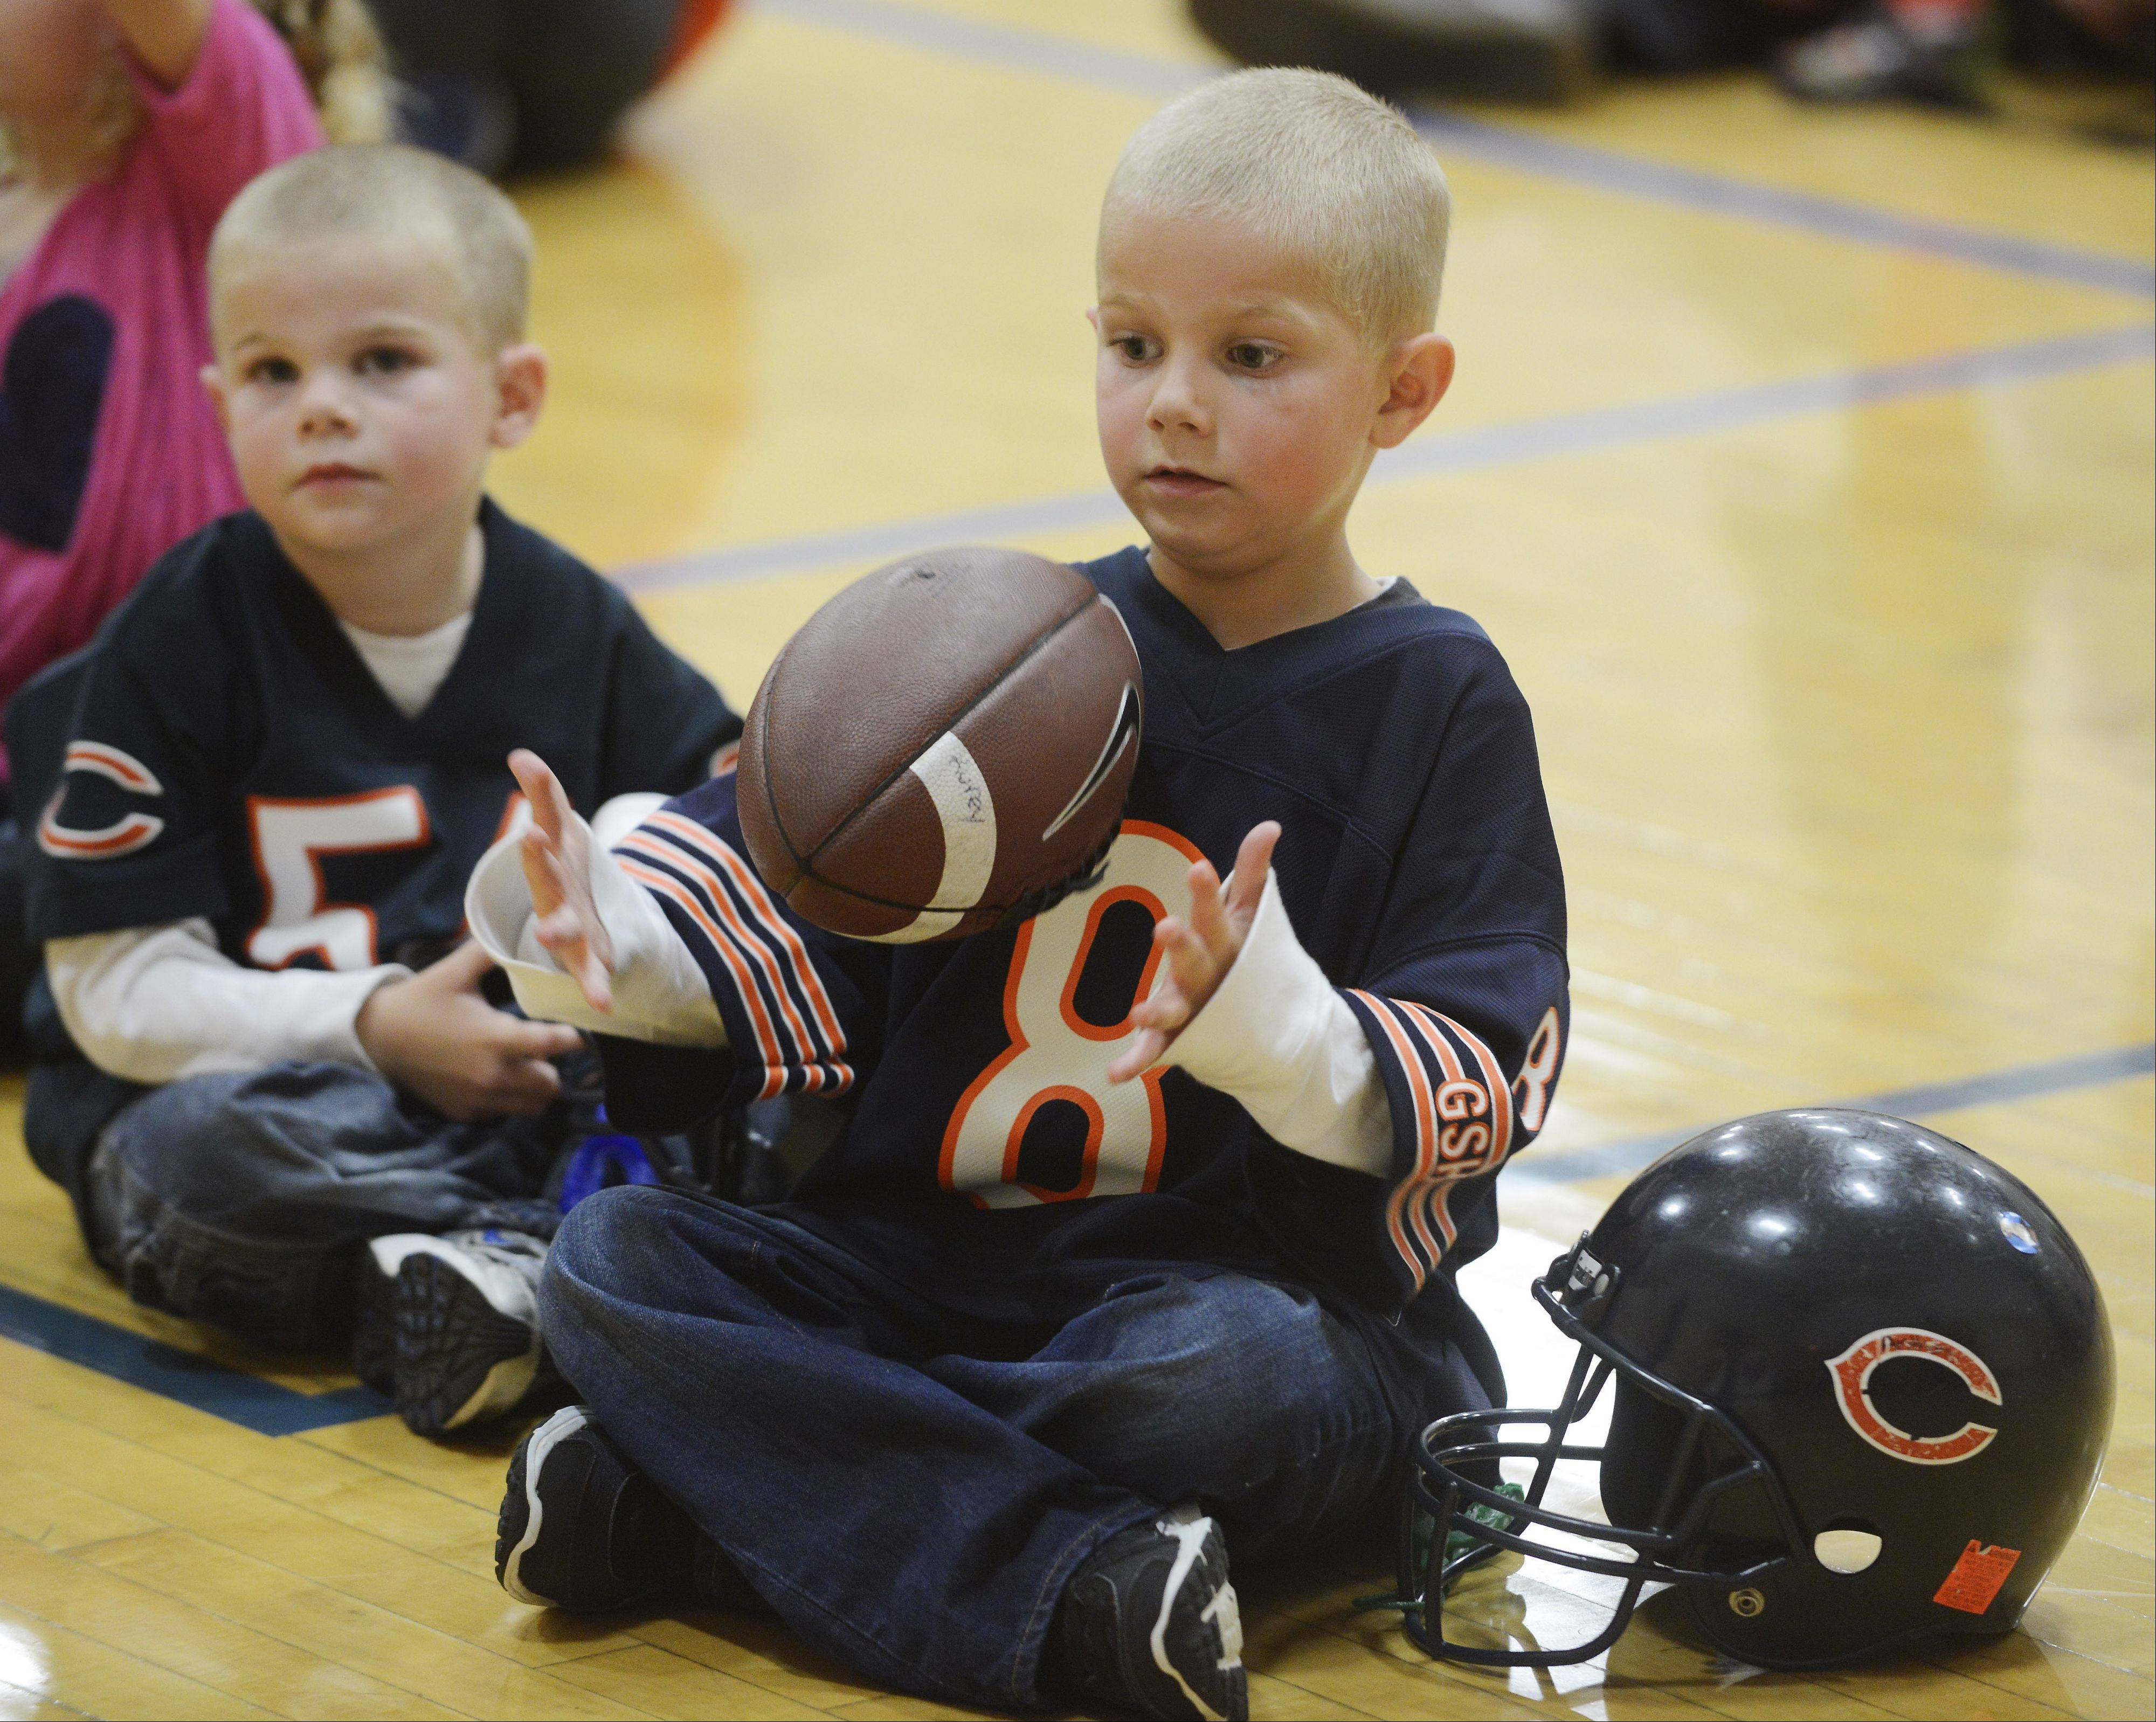 JOE LEWNARD/jlewnard@dailyherald.comAnthony Kurey, 4, of Palatine flips his football Tuesday in his hands while attending a fitness event with his brother, Joey, 3, at the Midtown Athletic Club in Palatine. Joining them was Chicago Bears safety Craig Steltz.